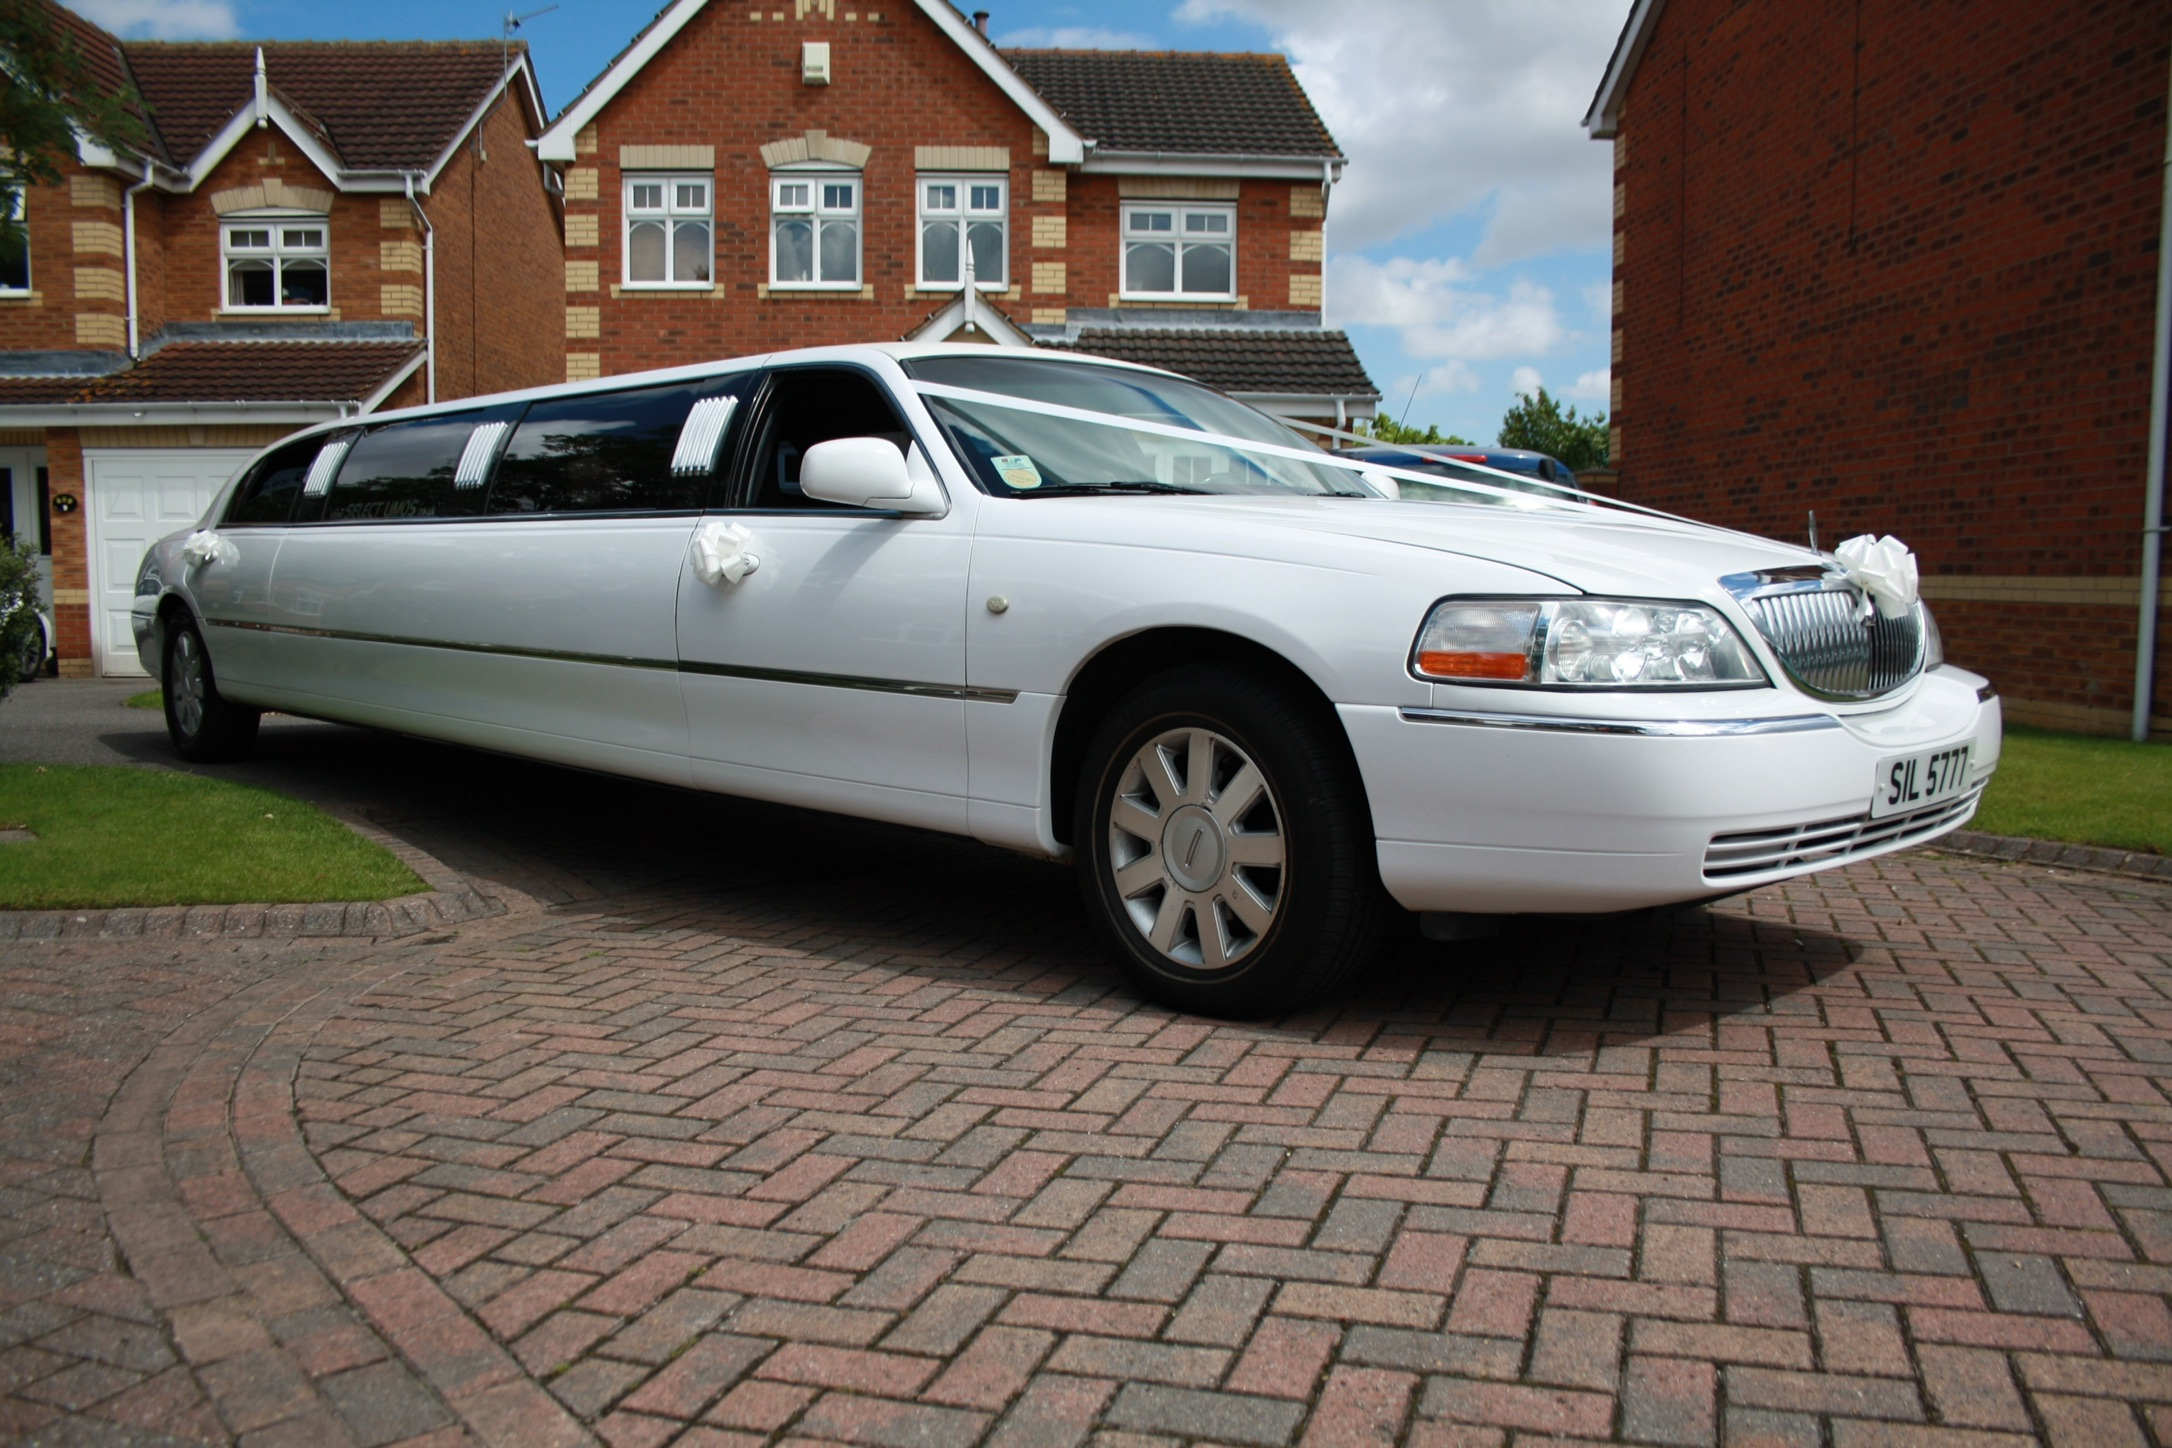 Select limos 8 passenger white limousine for proms and weddings